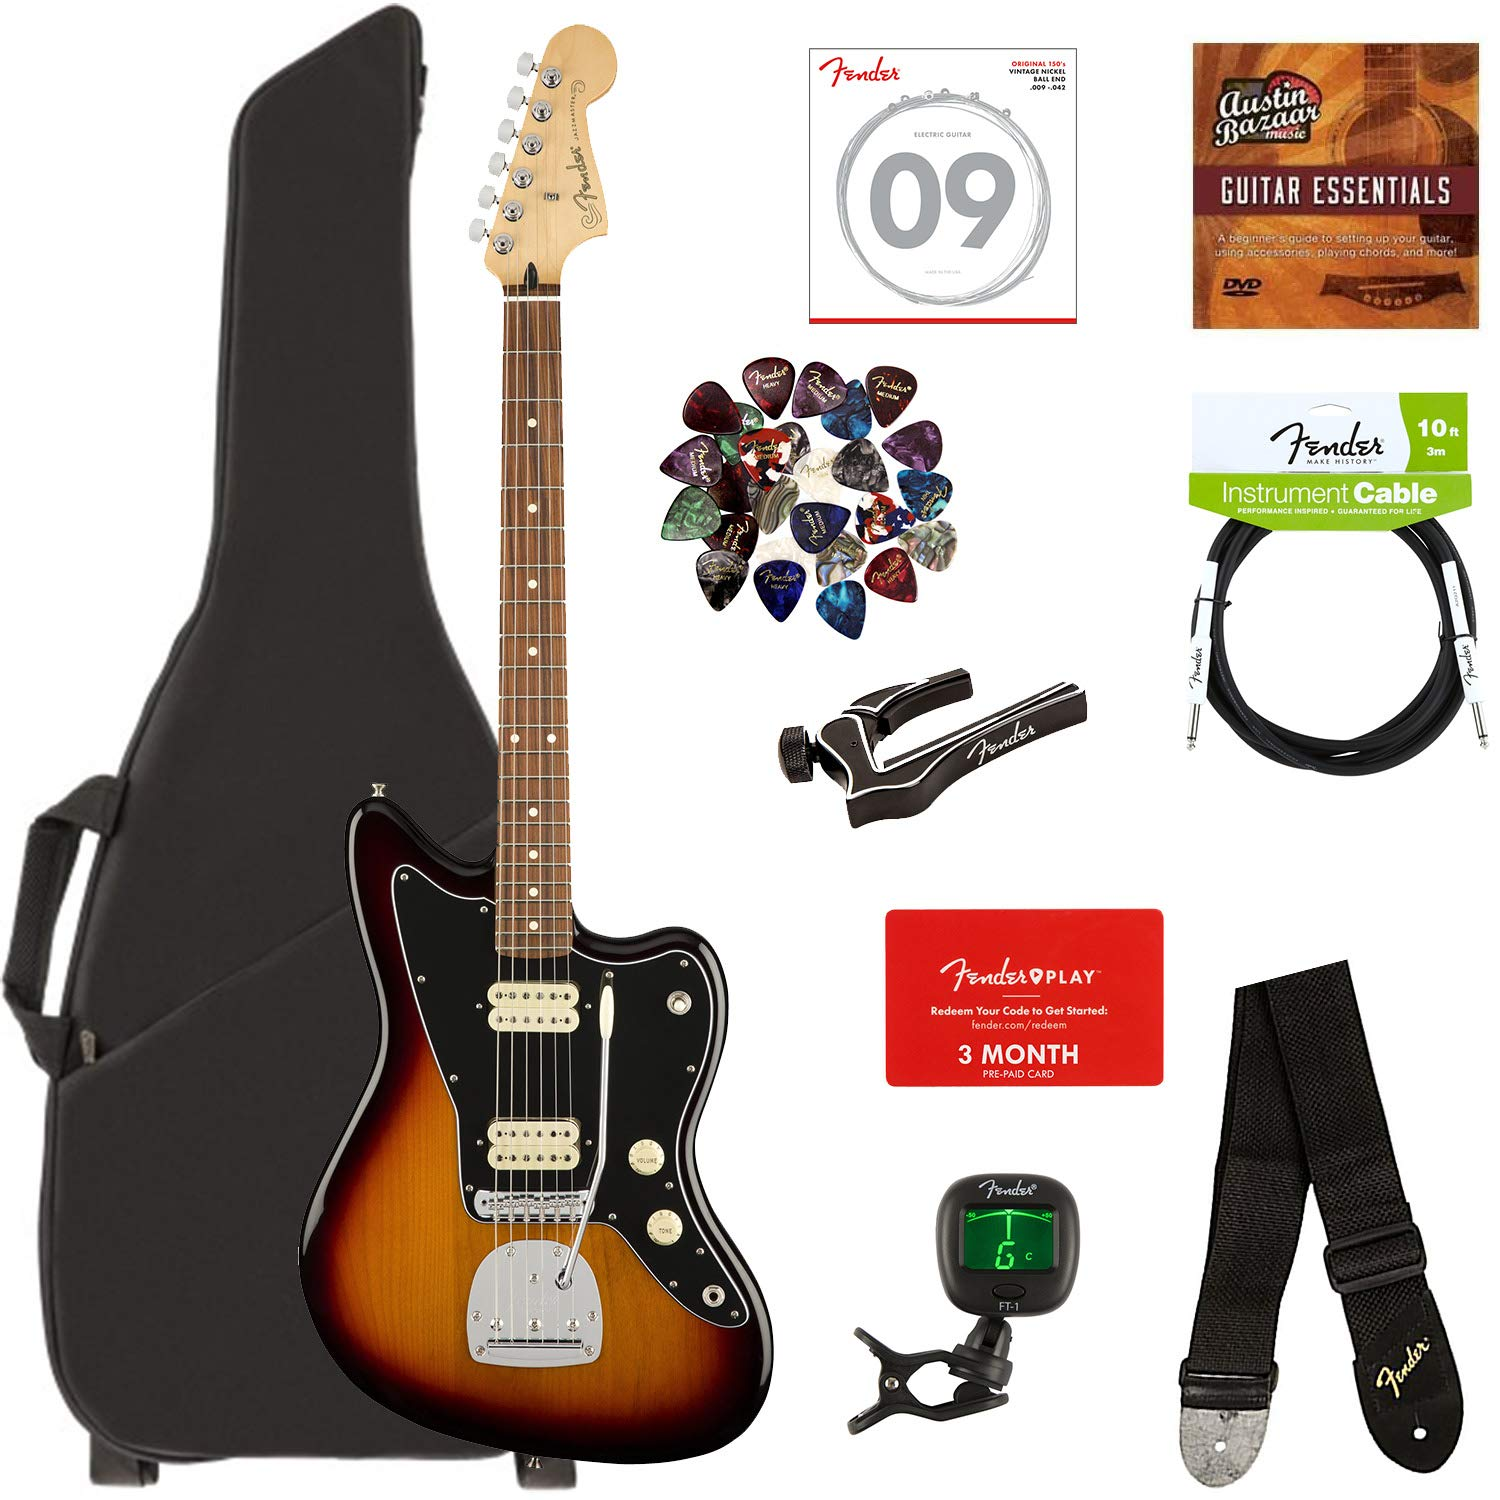 Fender Player Jazzmaster, Pau Ferro - 3-Color Sunburst Bundle with Gig Bag,  Stand, Cable, Tuner, Strap, Strings, Picks, Capo, Fender Play Online